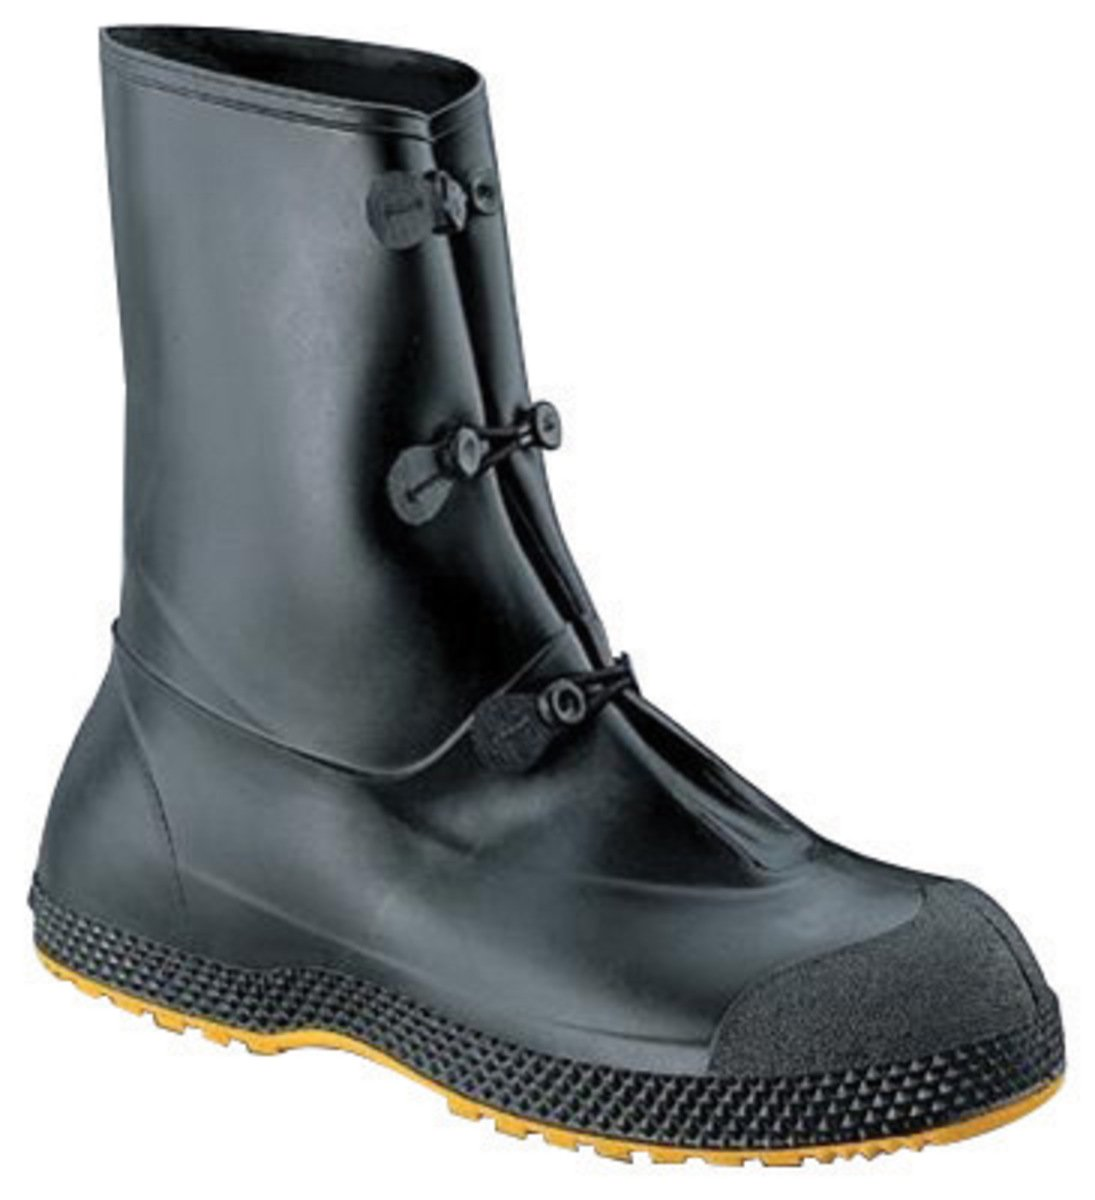 Servus By Honeywell Medium SF SuperFit Black 12'' PVC Premium Overboots With Dual Compound Outsole